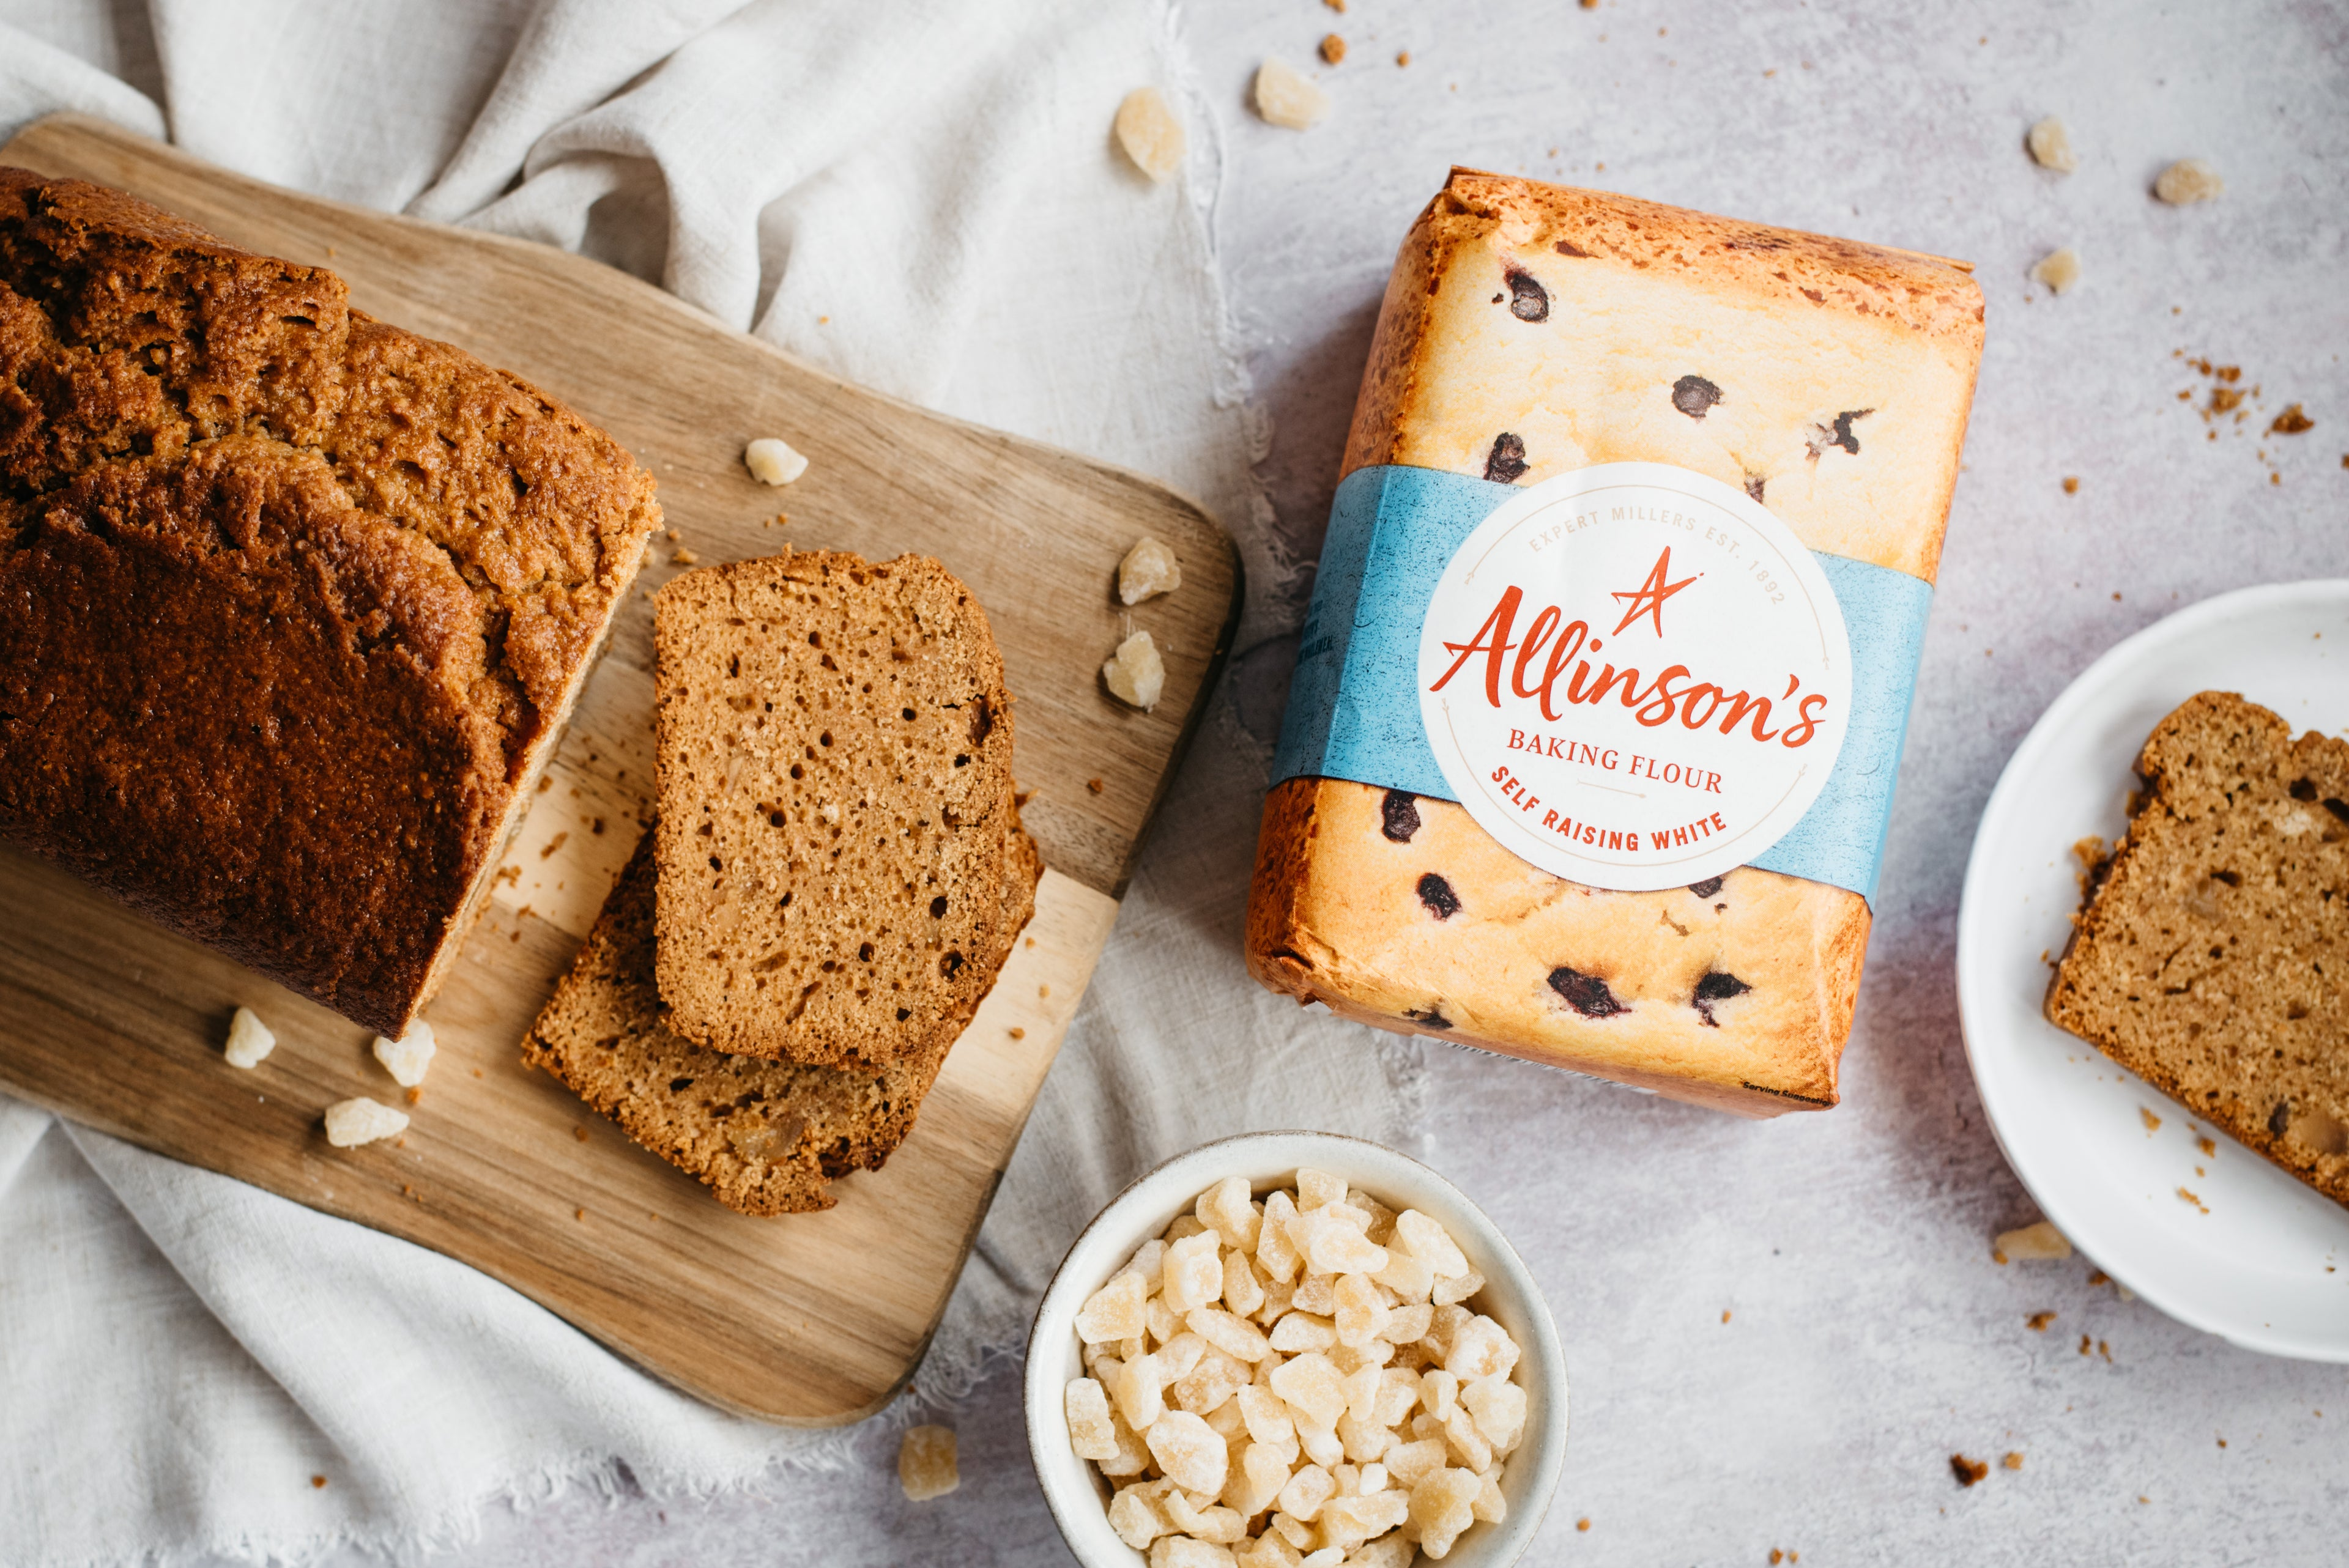 A flat lay of Gingerbread Loaf on a serving board, next to a bowl of ginger, bag of Allinson's flour and a slice of Gingerbread Loaf on a plate